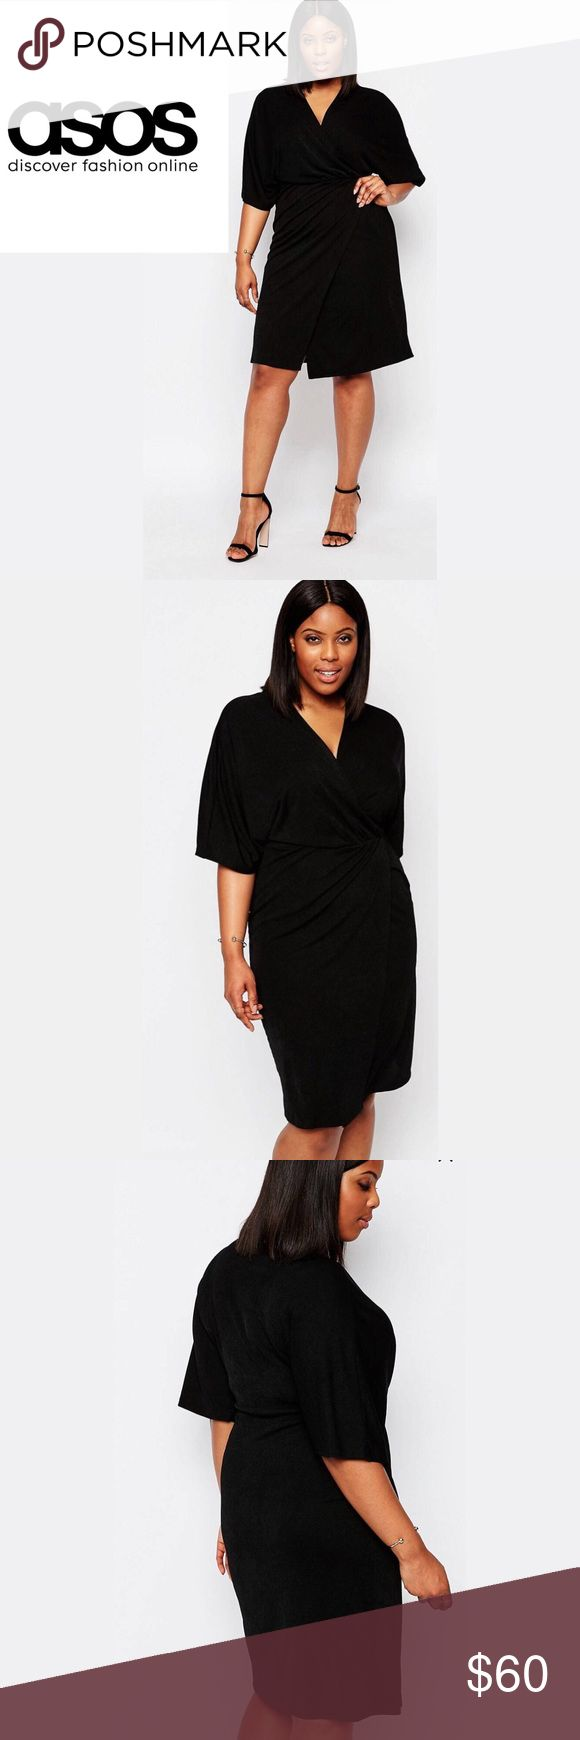 🆕 listing!  ASOS Black Wrap Dress Club L brand from ASOS.  Stretchy black v-neck dress with a wrap style front.  Super flattering! True to size.  95% polyester 5% elastane.  The fabric has a bit of texture and weight to it. I love it but I have too many black dresses and need to chill ;) ASOS Dresses Midi